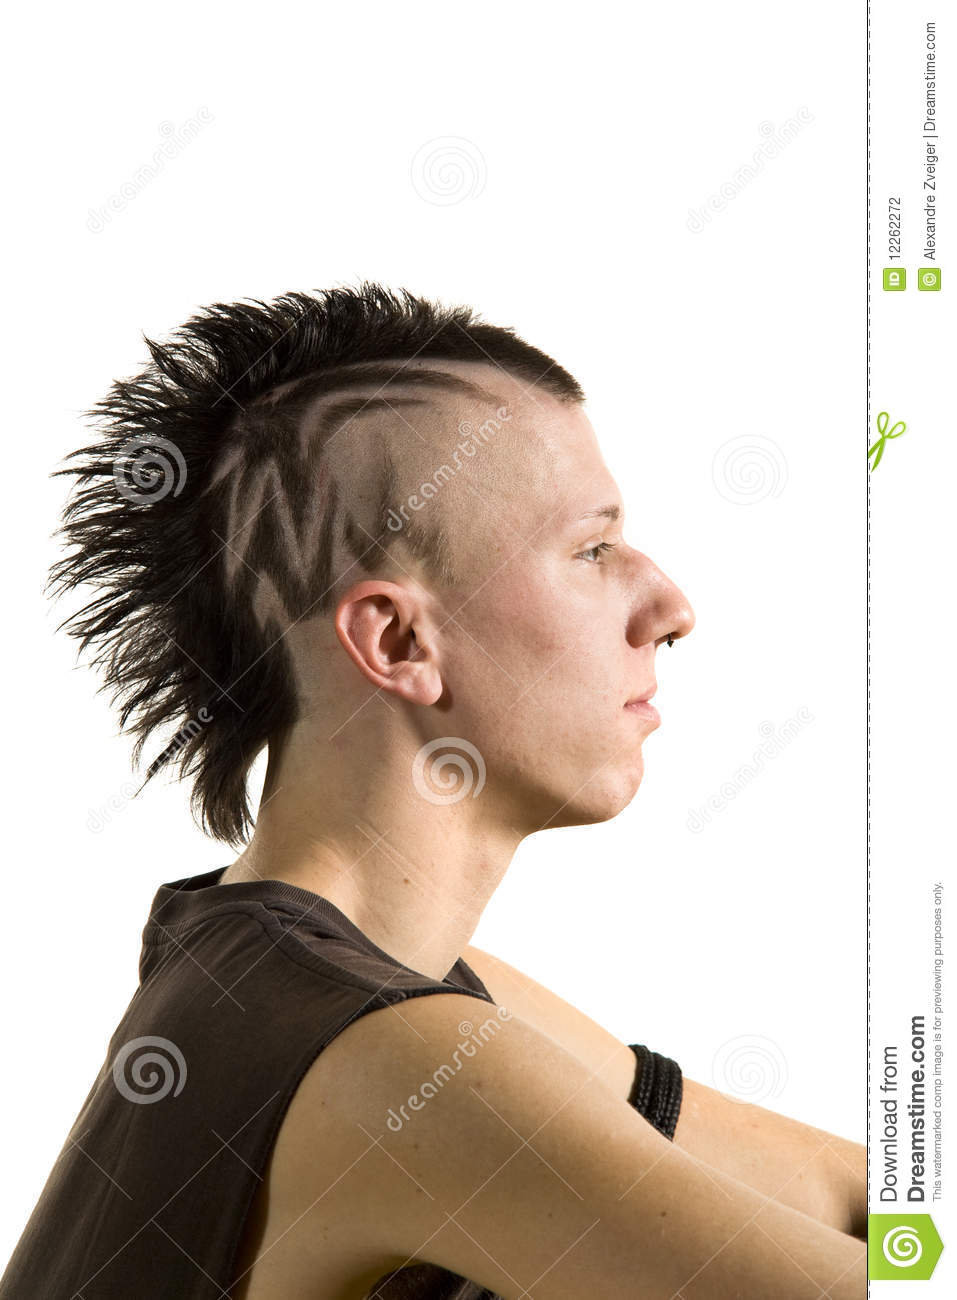 Punk Fashion Boy Stock Photography Image 12262272